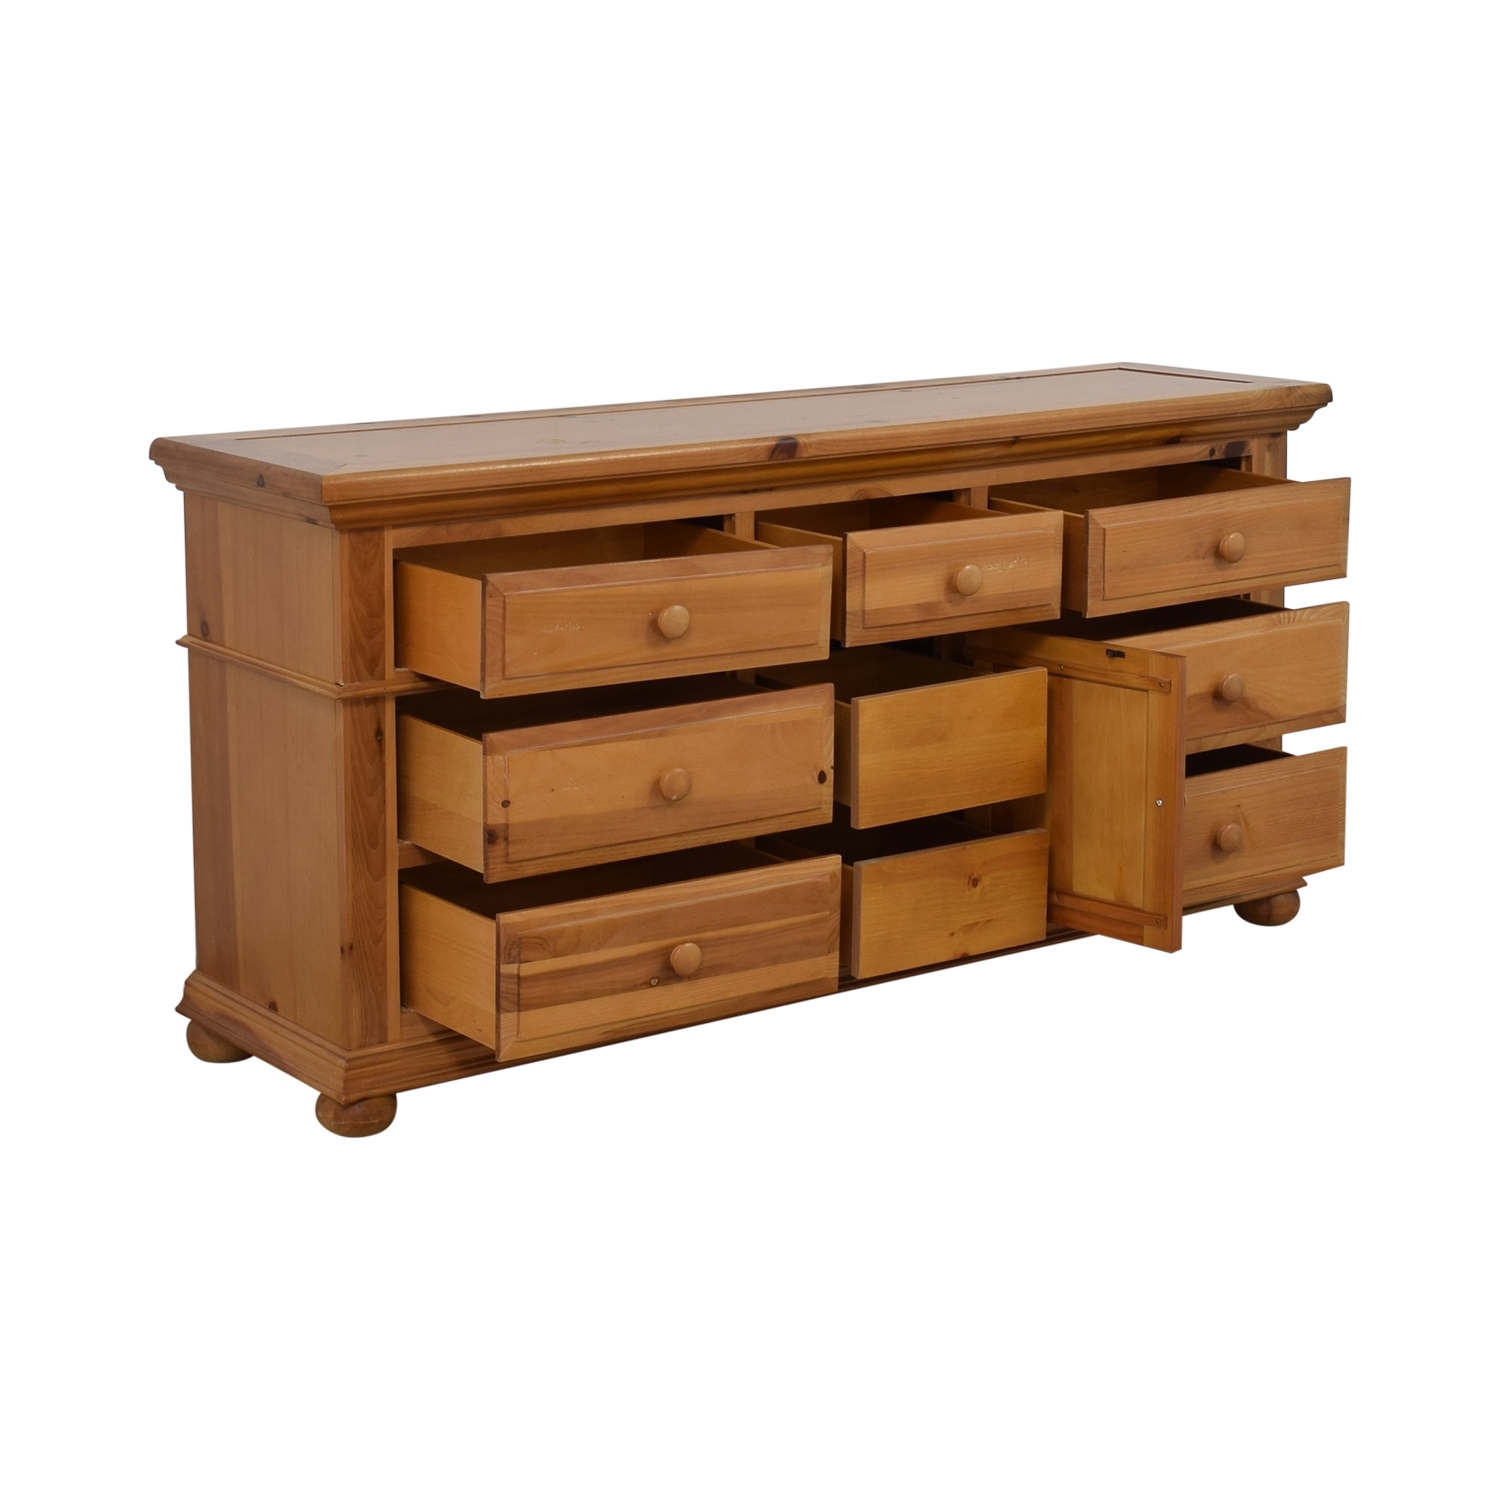 Fine 61 Off Broyhill Furniture Broyhill Furniture Chest Of Drawers Storage Dailytribune Chair Design For Home Dailytribuneorg